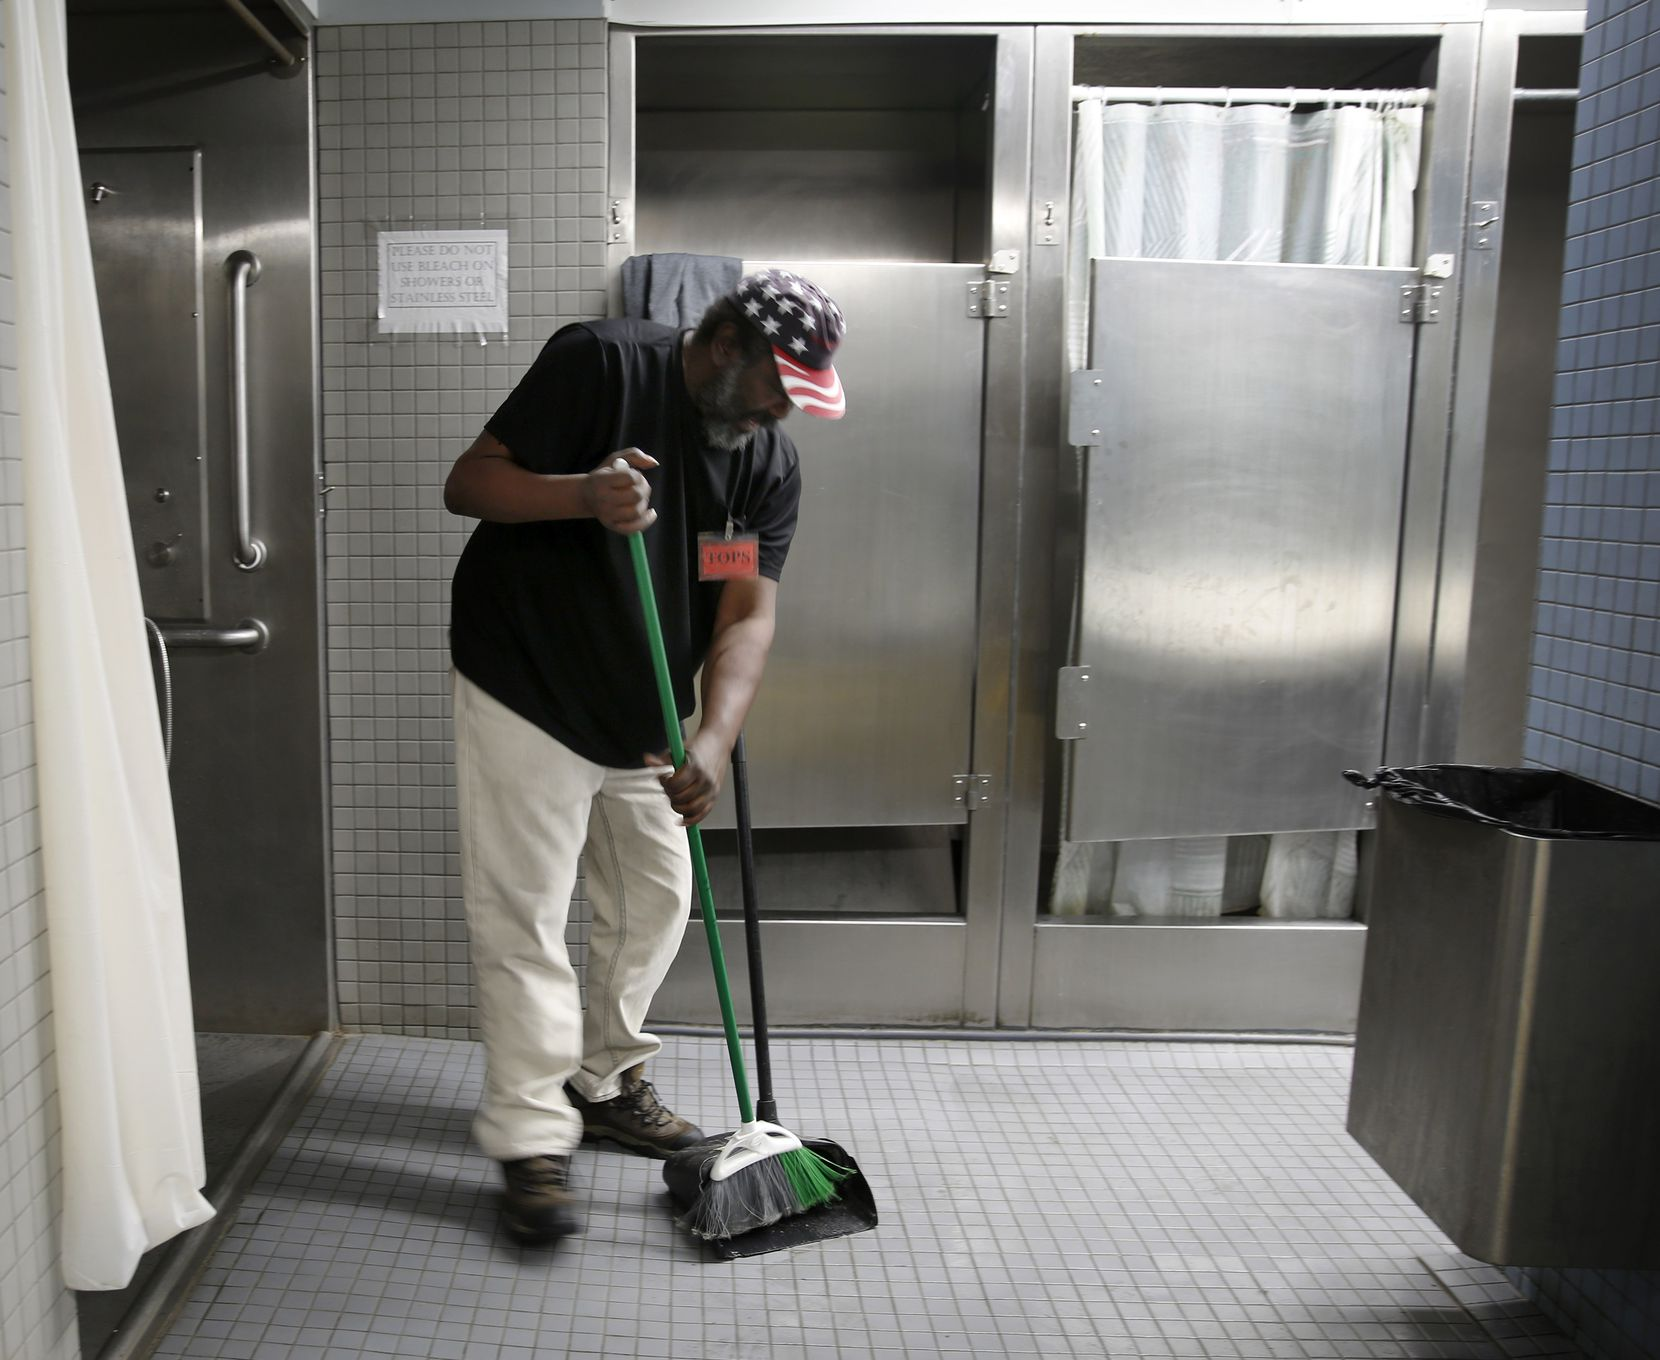 Salvation Army volunteer Kenneth Spencer cleans up the men's showers at the Carr P. Collins Social Service Center in Dallas. The taller shower doors provide more privacy to guests, including those who identify themselves as transgender.